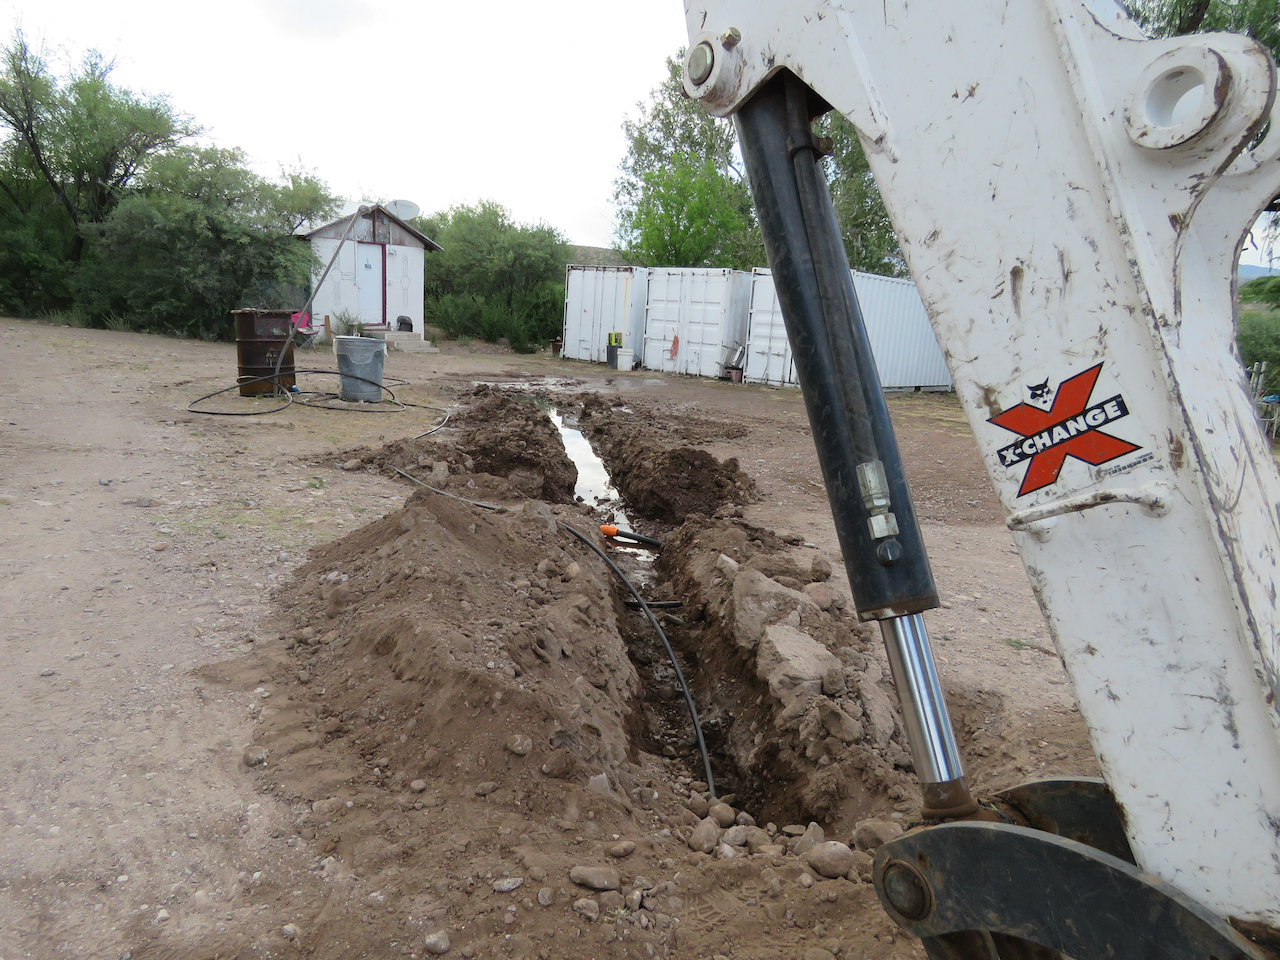 Bobcat cutting fiber optic cable ditch hits water supply